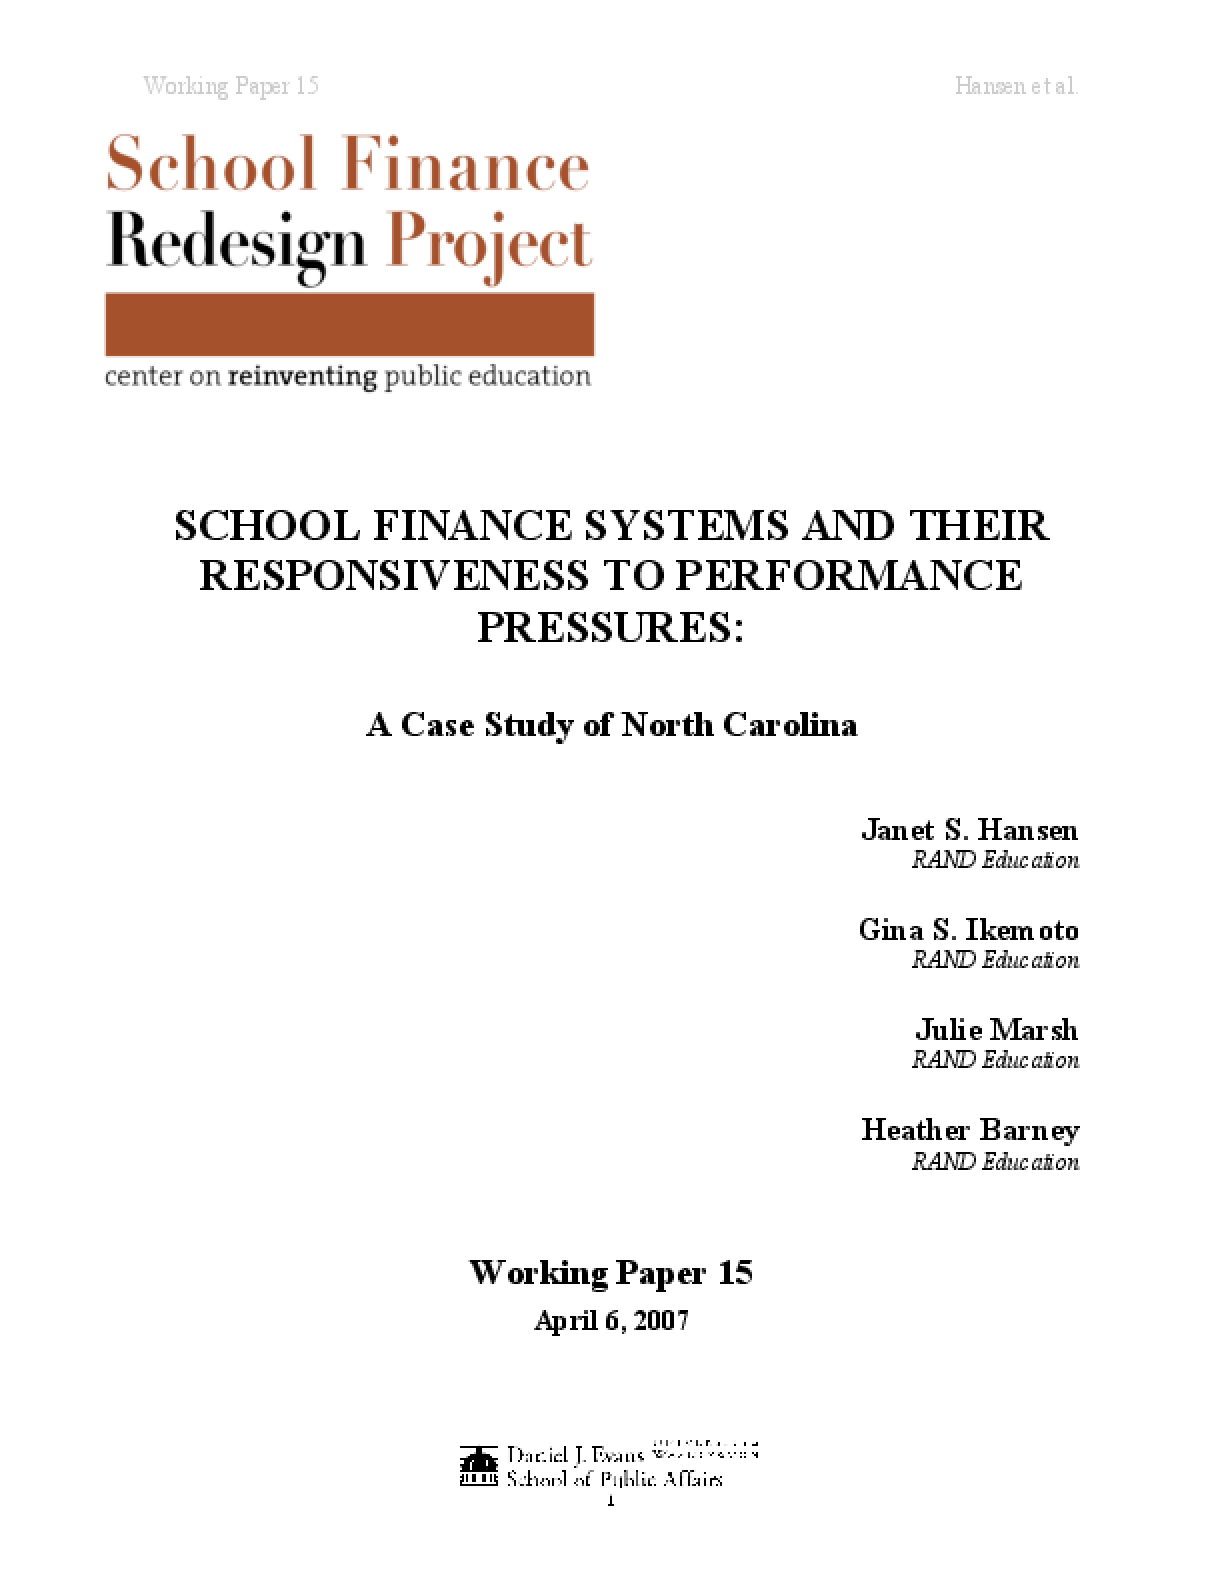 School Finance Systems and Their Responsiveness to Performance Pressures: A Case Study of North Carolina